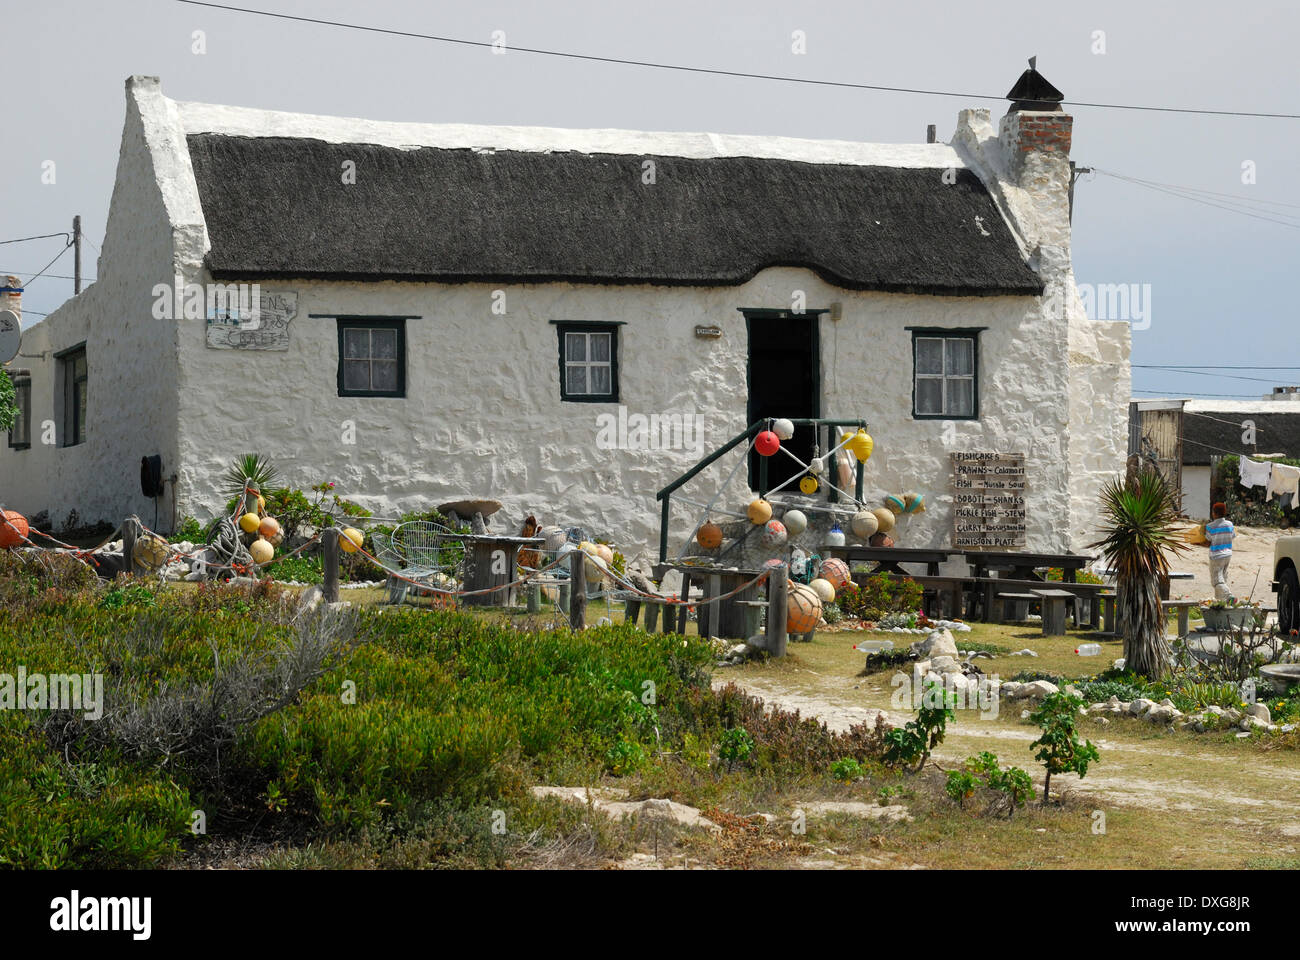 Fisherman 39 s cottage arniston western cape stock photo royalty free image 67970191 alamy - The fishermans cottage ...